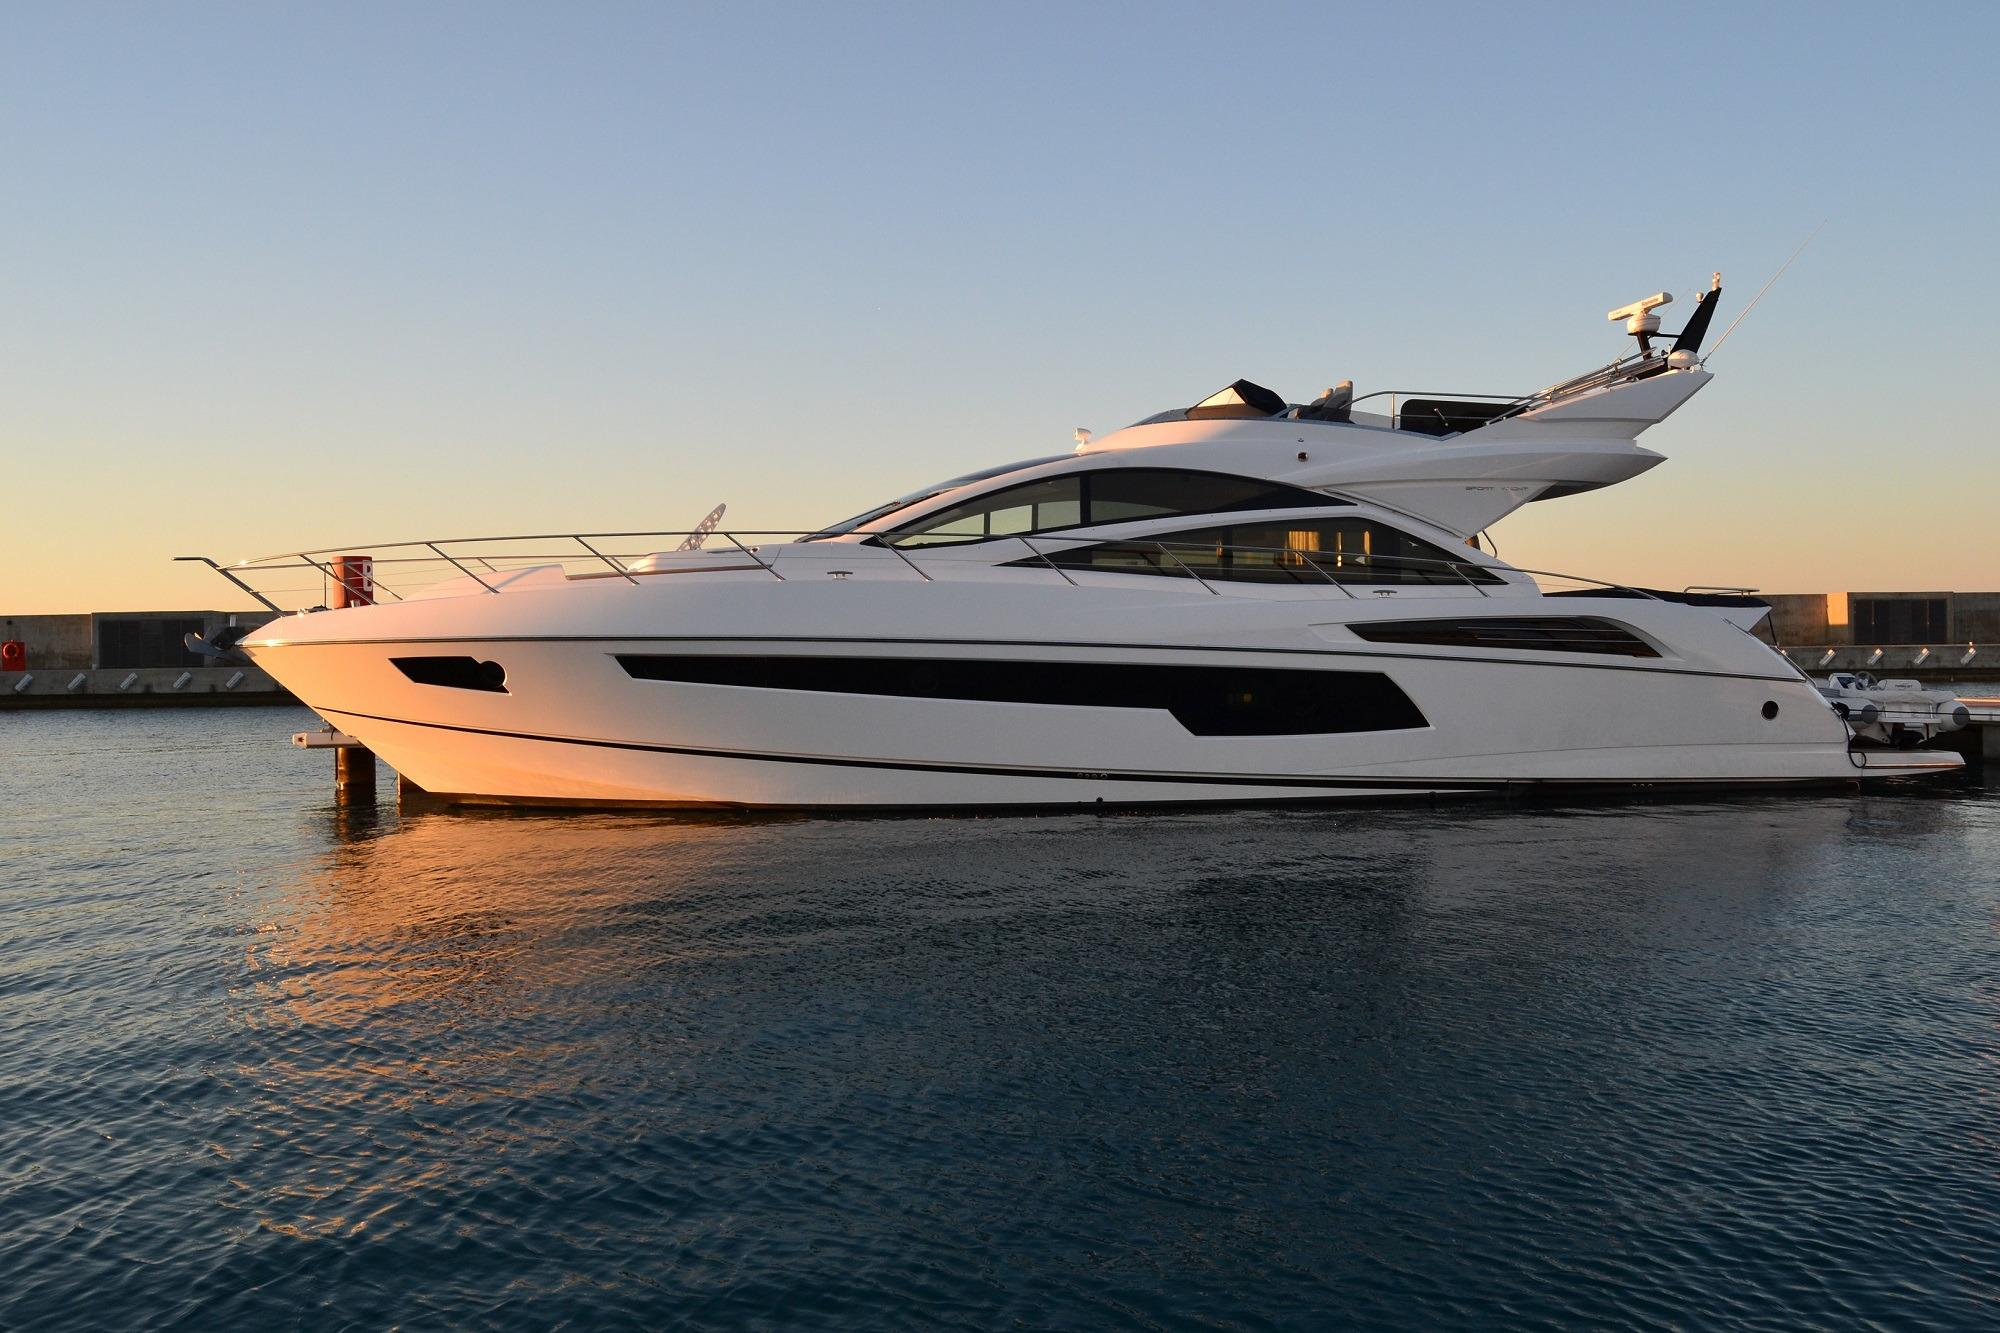 Sunseeker 68 Sport Yacht - Side Profile